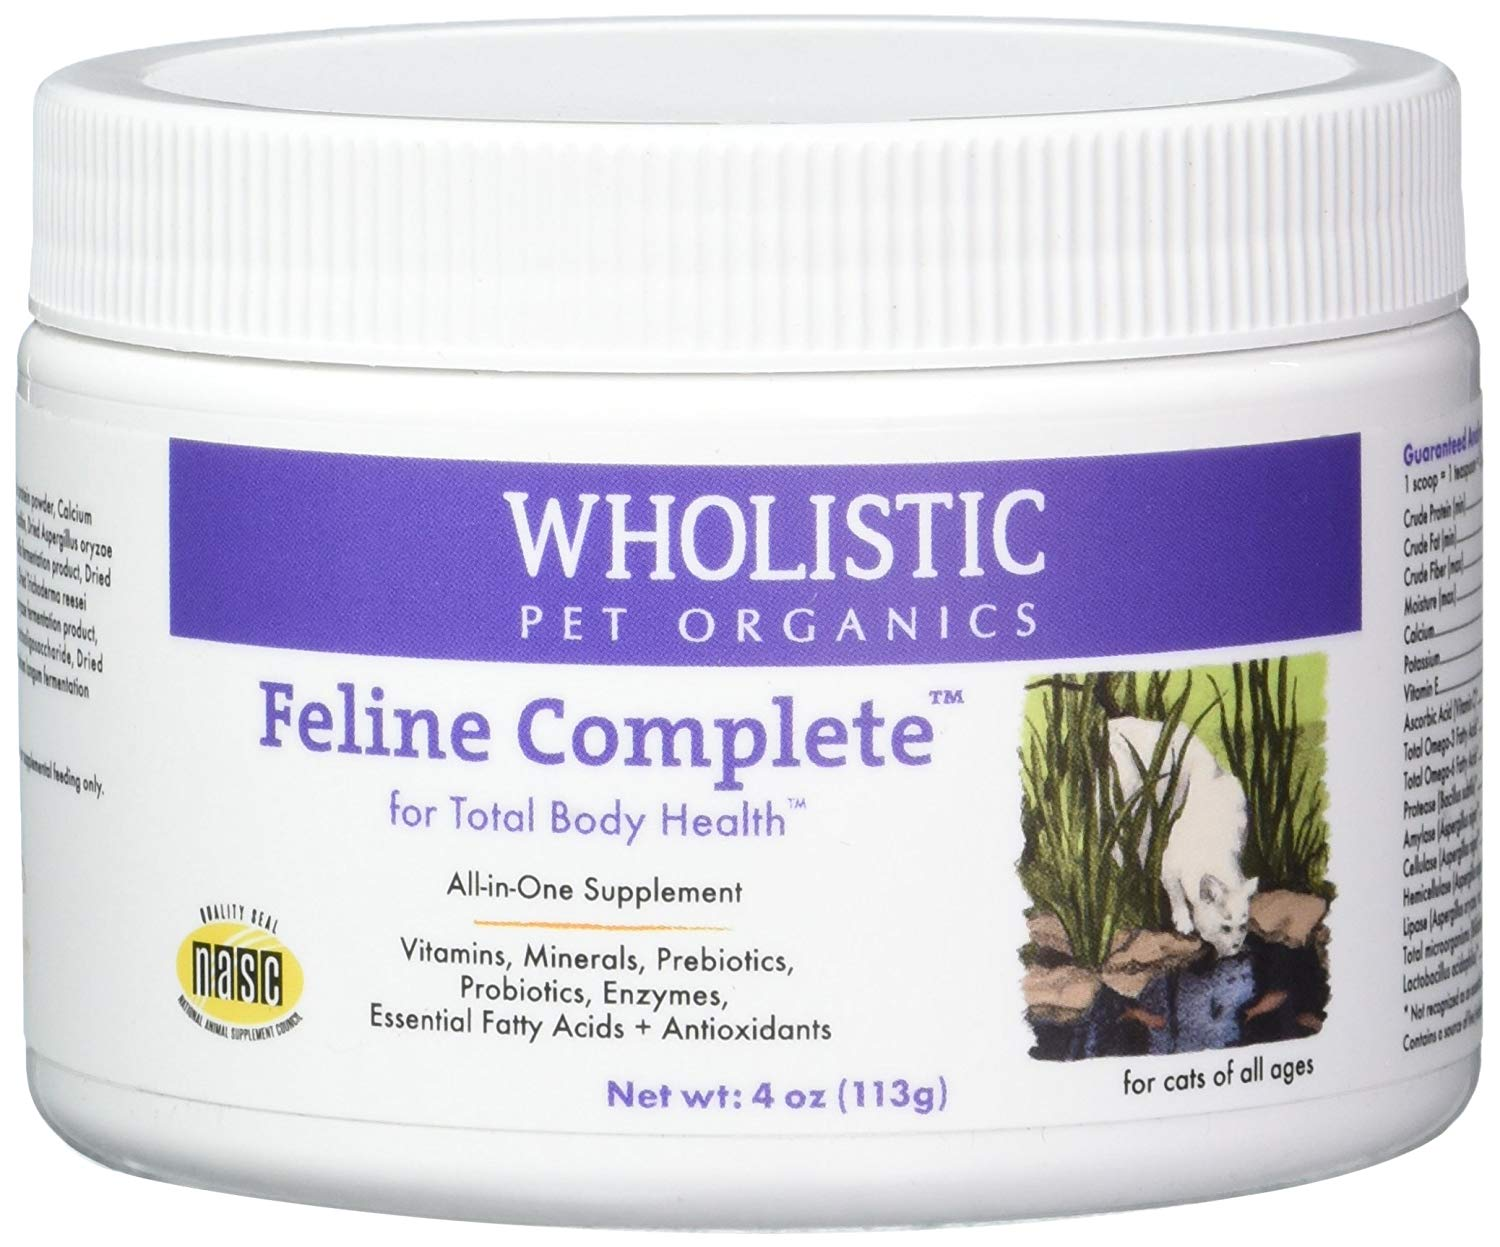 Wholistic Pet Organics Feline Complete Multivitamin